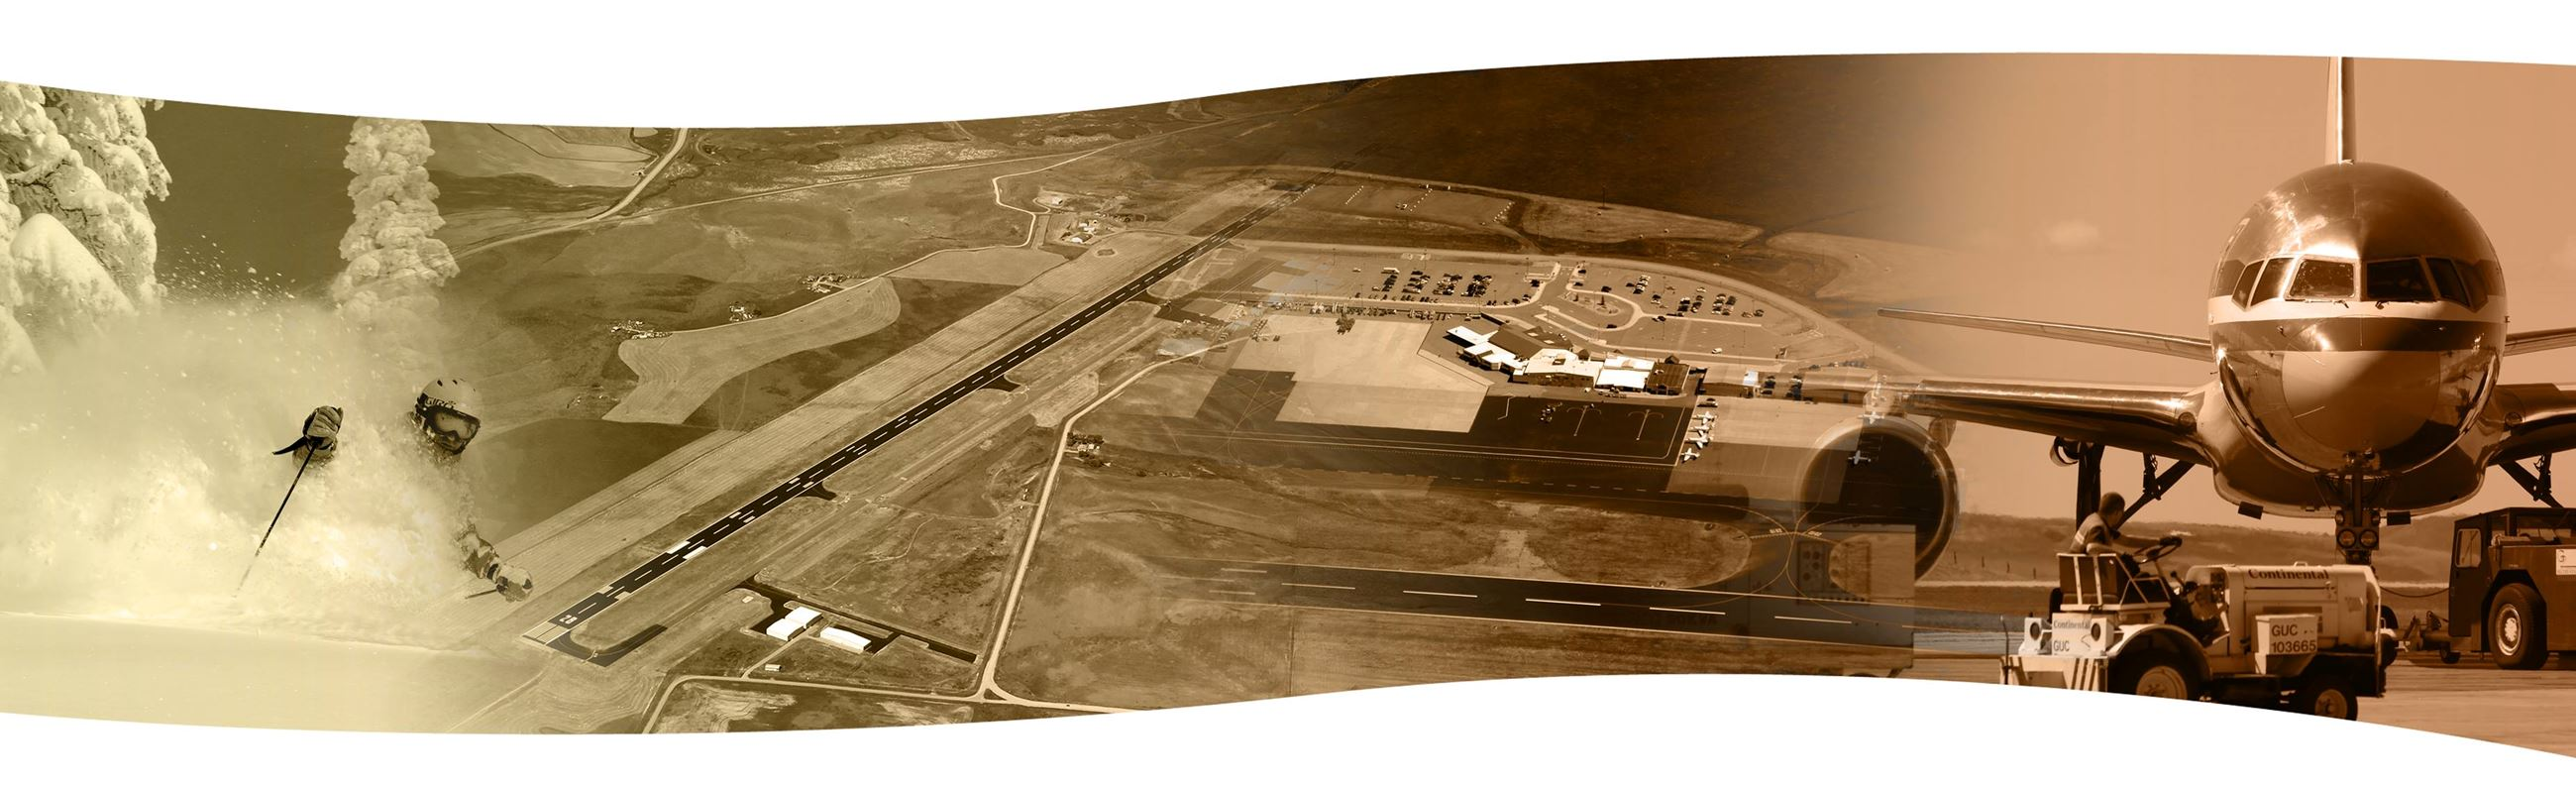 yampa valley regional airport photo